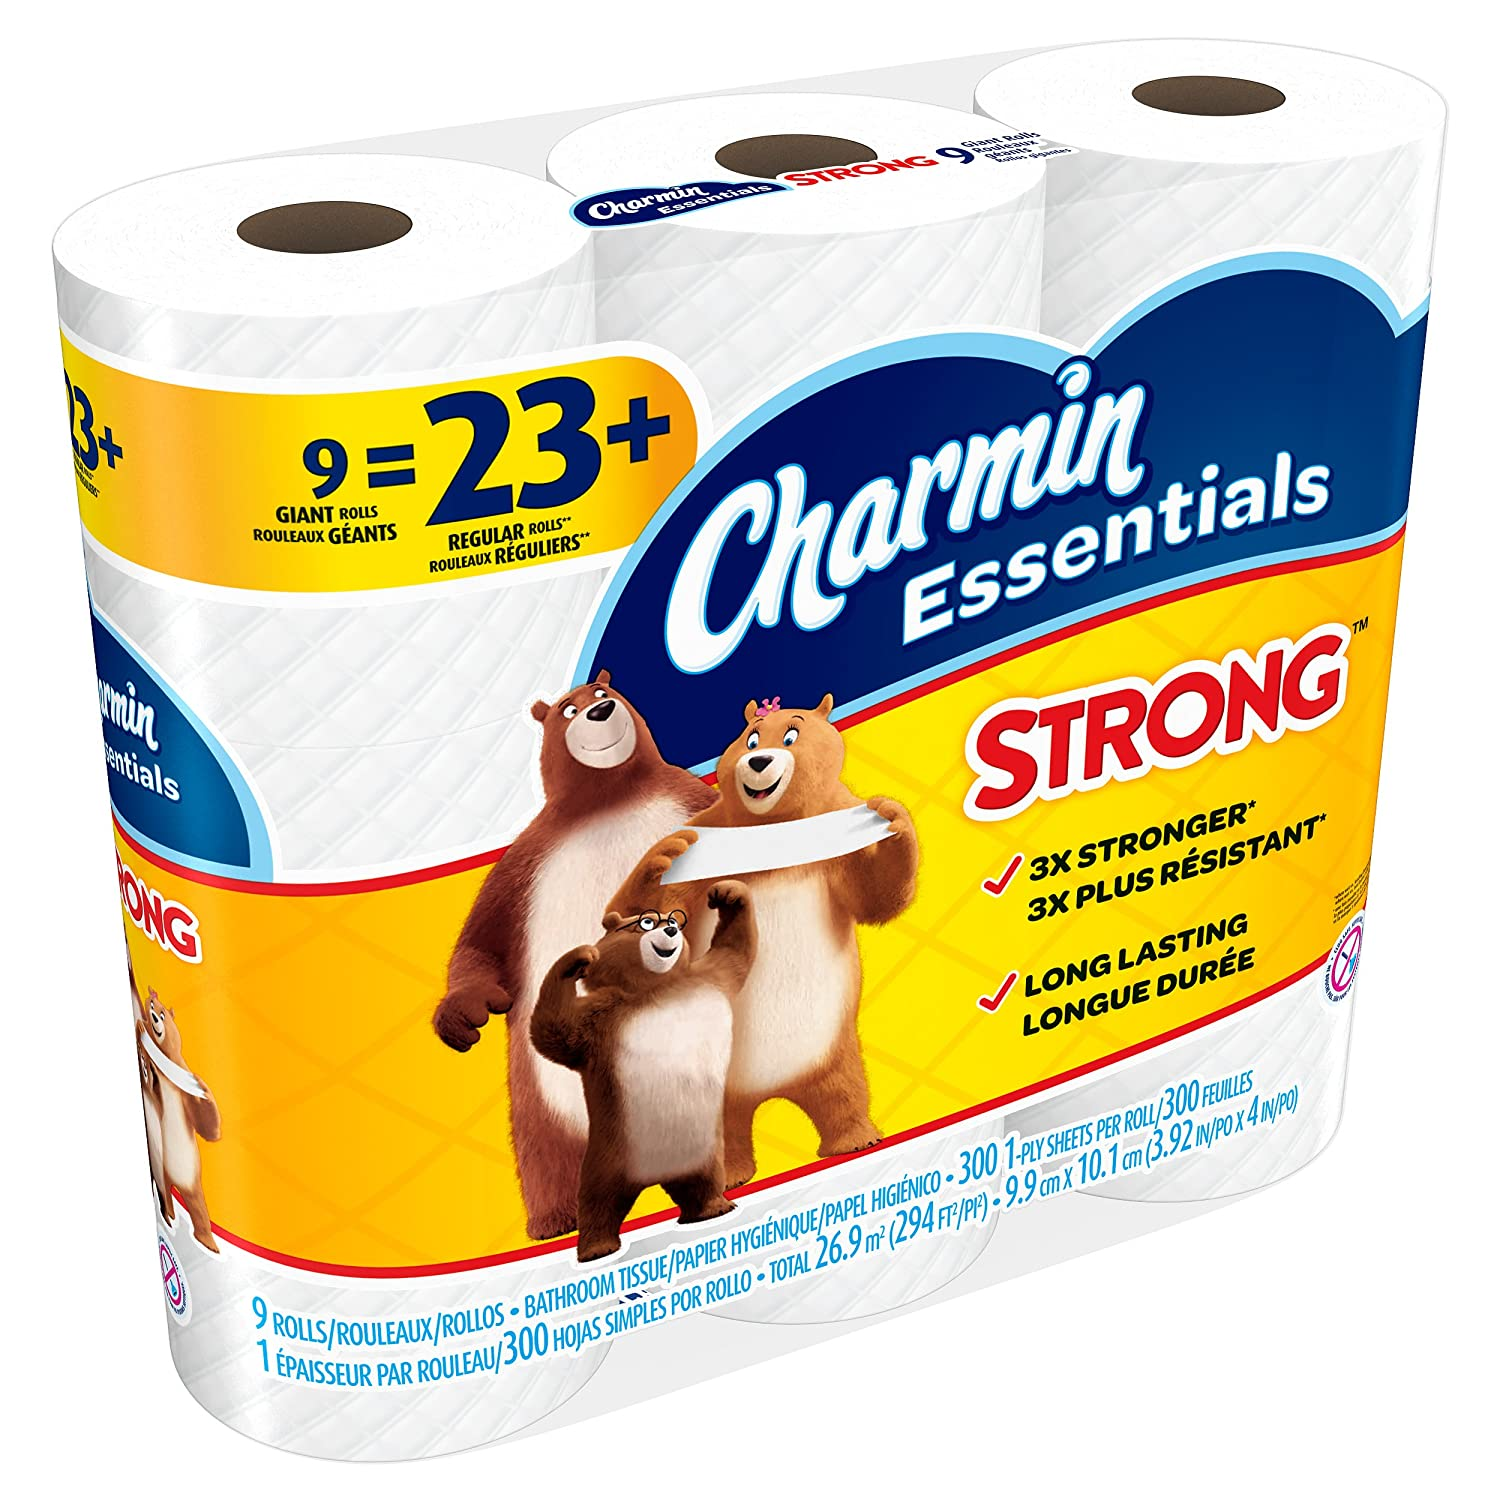 Amazon.com: Charmin Charmin Essentials Strong Toilet Paper 9 Giant Rolls, 1.8 Pound: Health & Personal Care